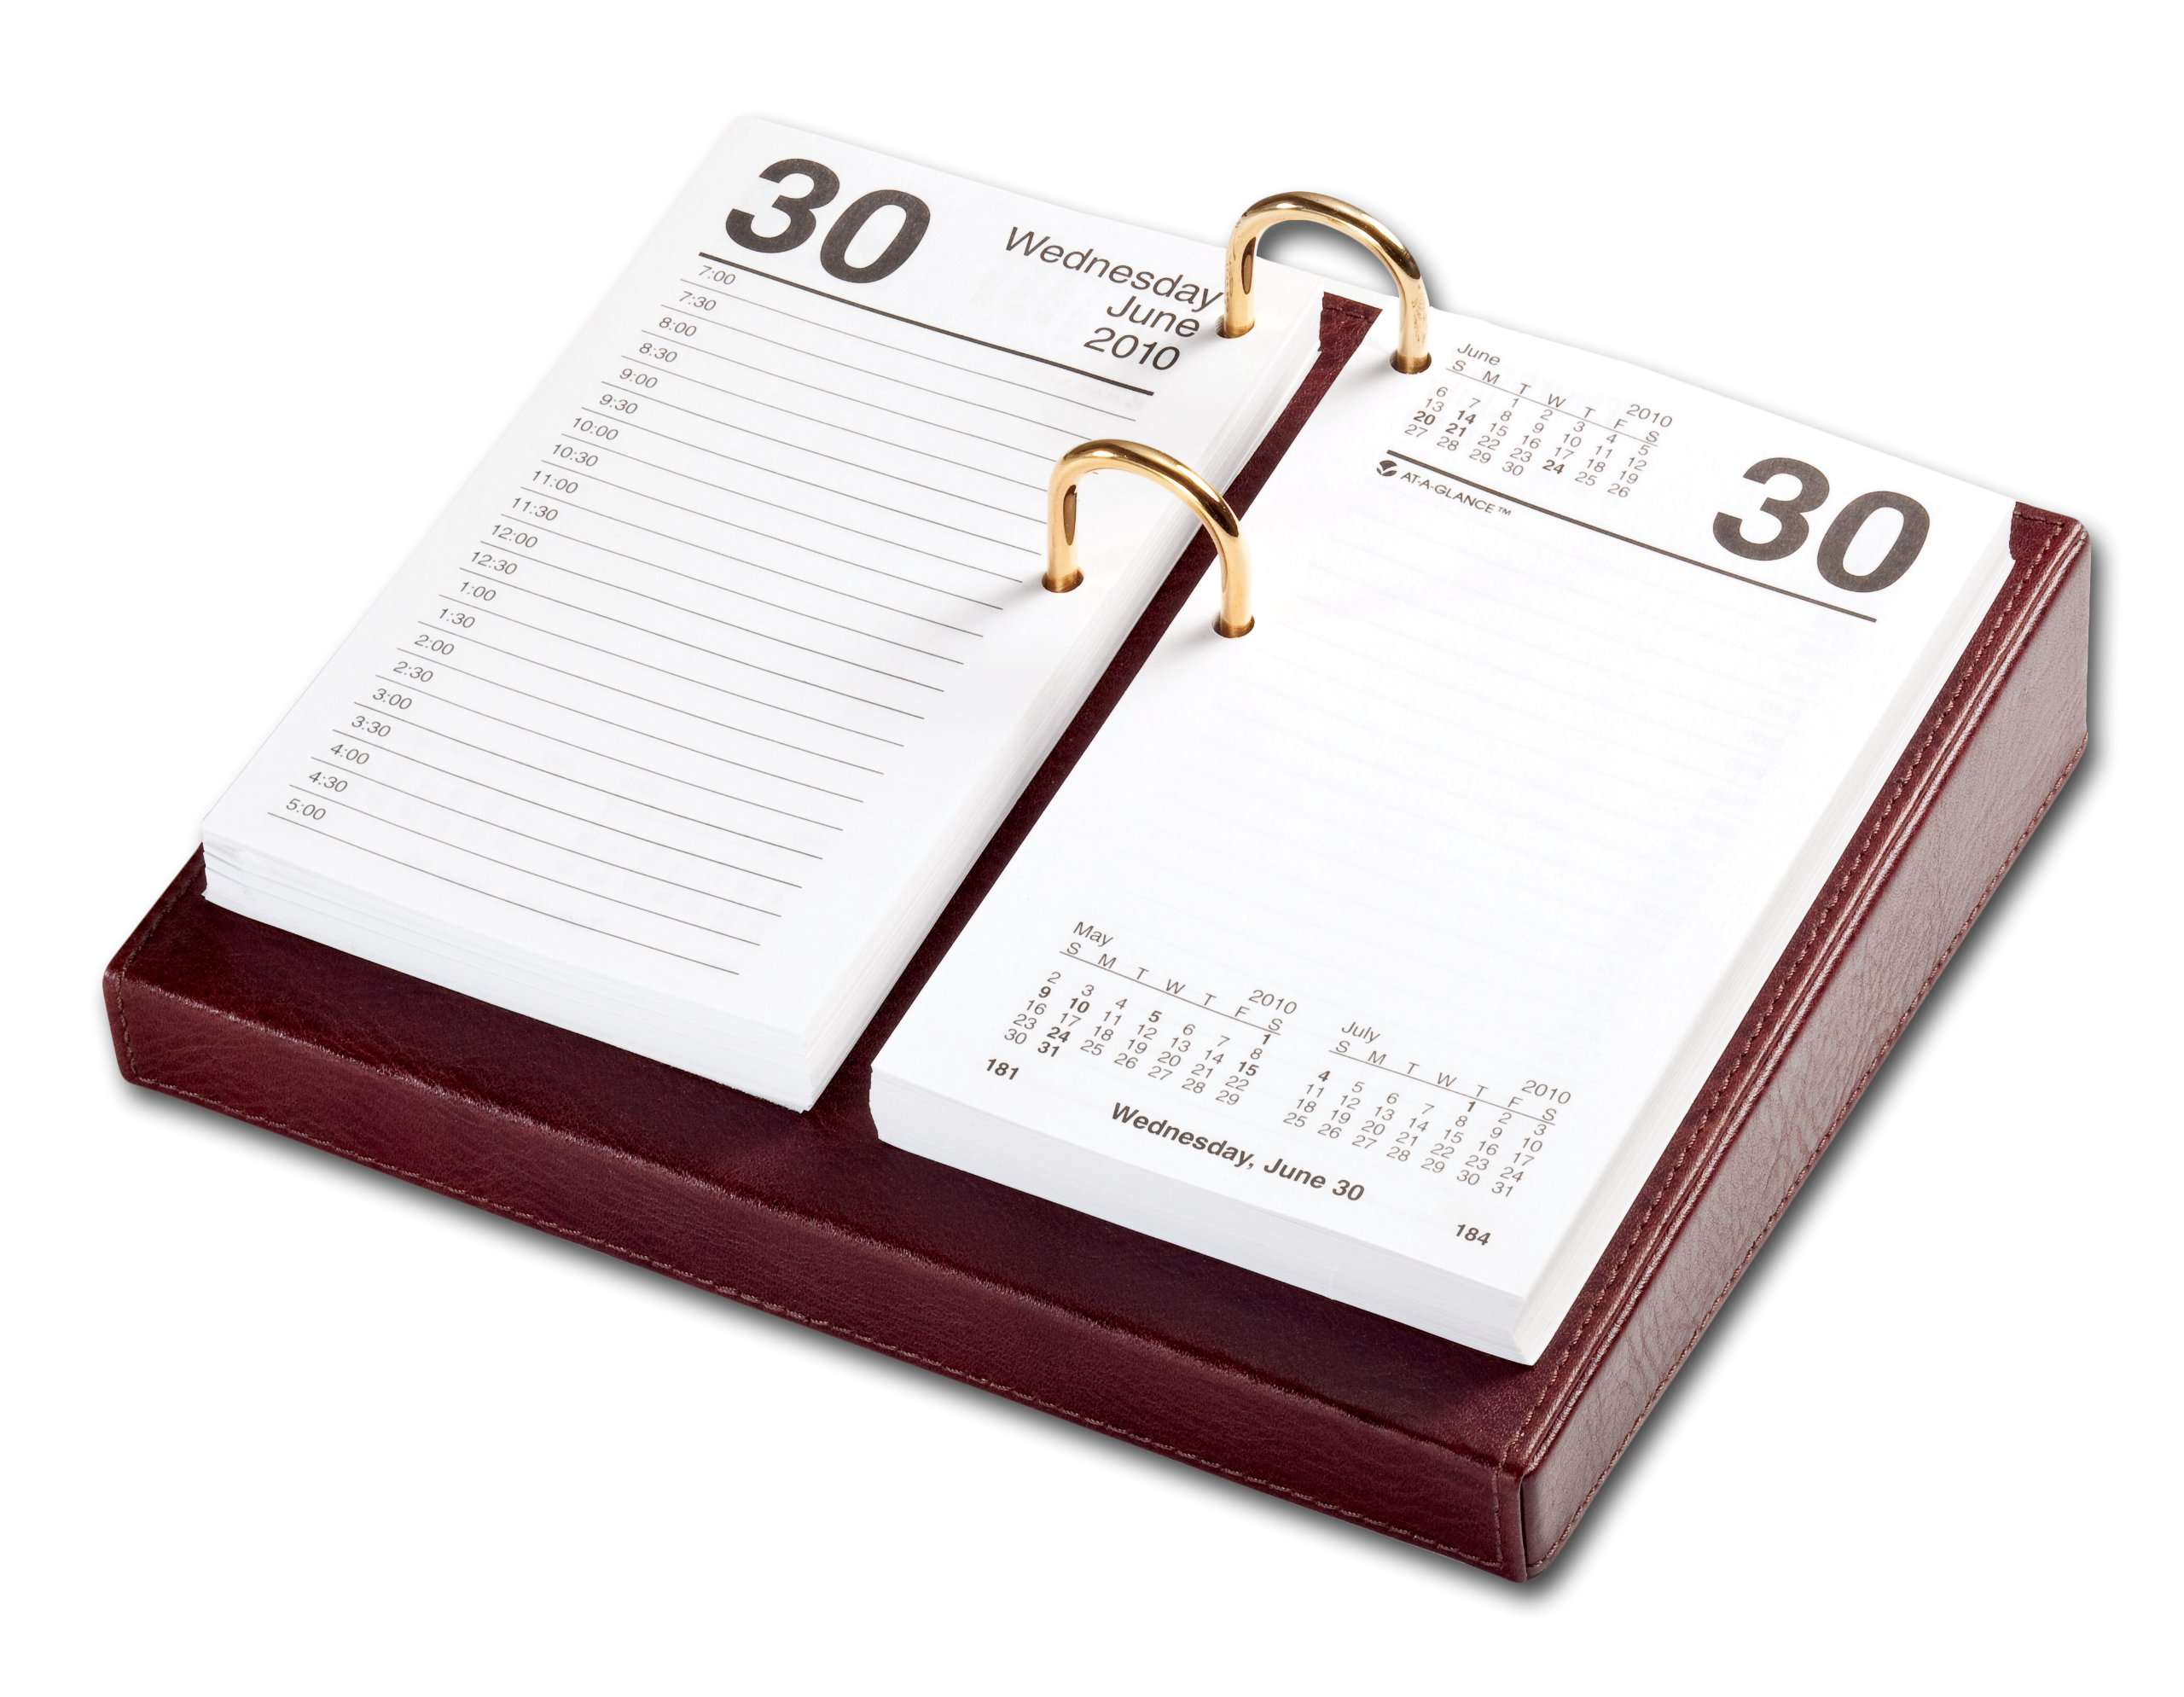 Dacasso Mocha Leather Desktop Calendar Holder with Gold Bolts, 3.5-Inch by 6-Inch